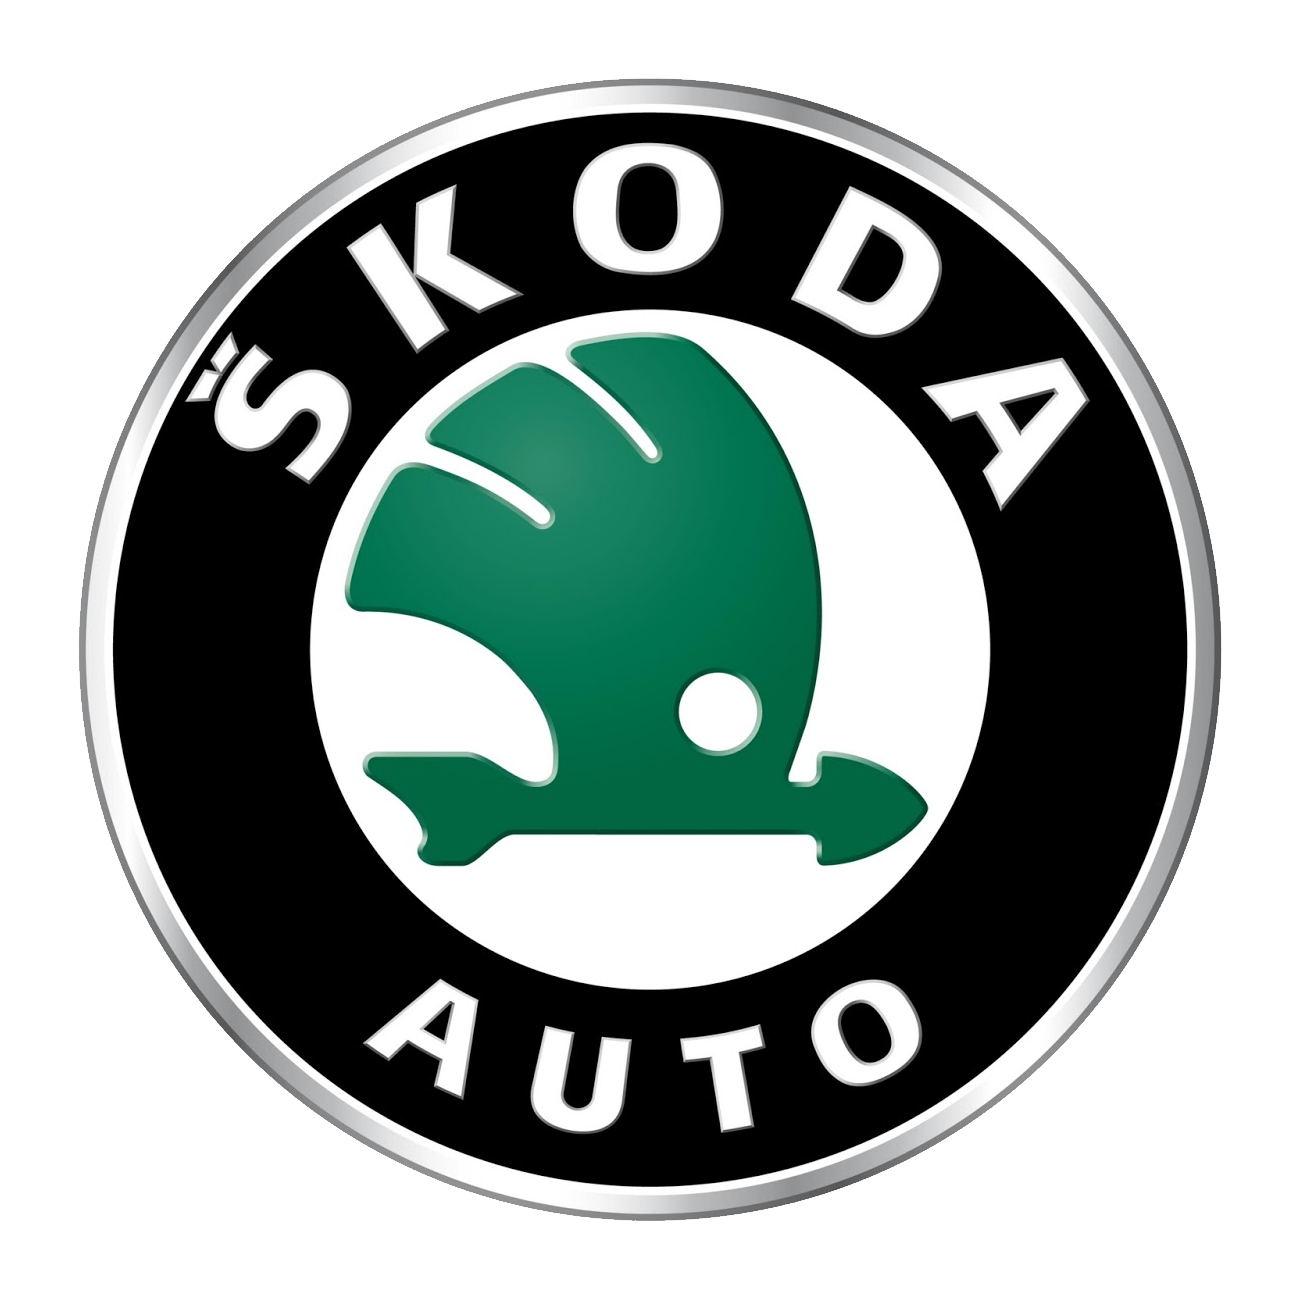 Skoda Car Logo Png Image All Car Logos Car Logos Skoda